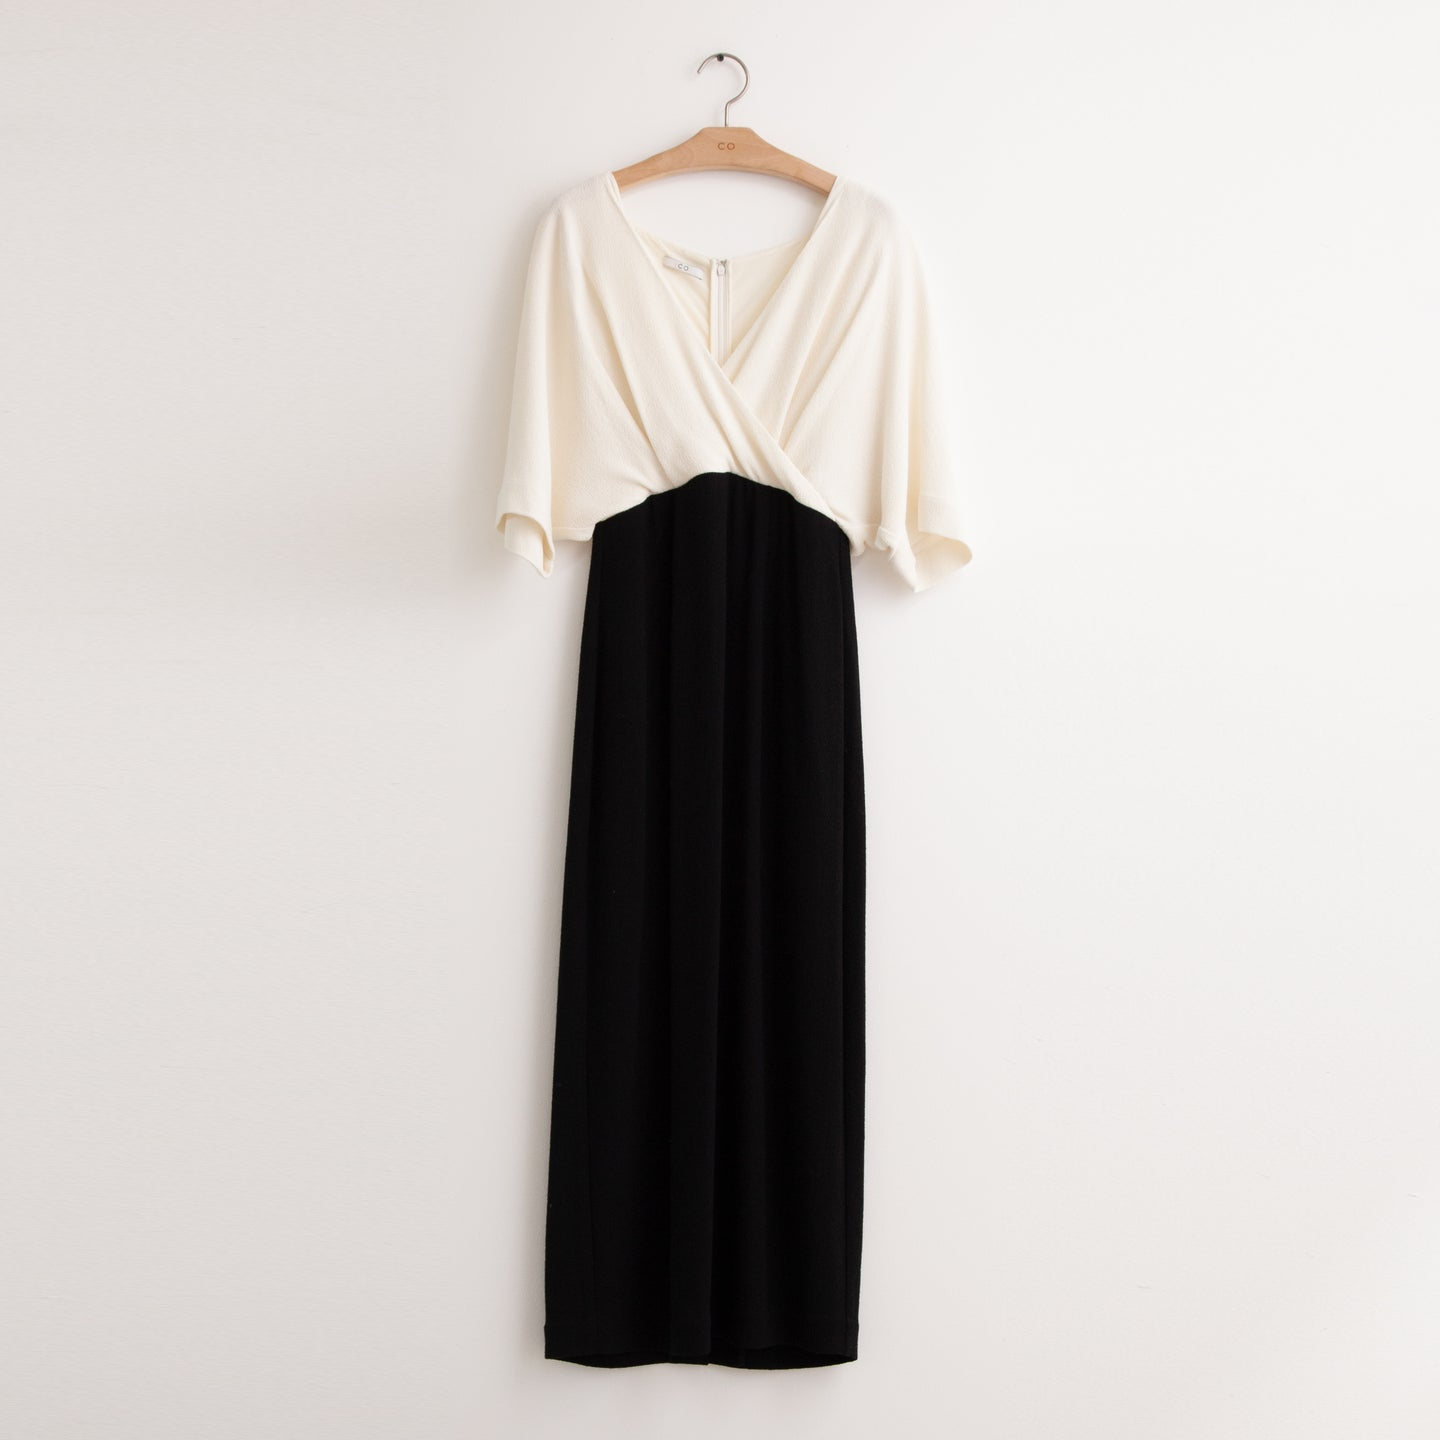 CO - Bi color drape neck dress in black and white pebbled crepe